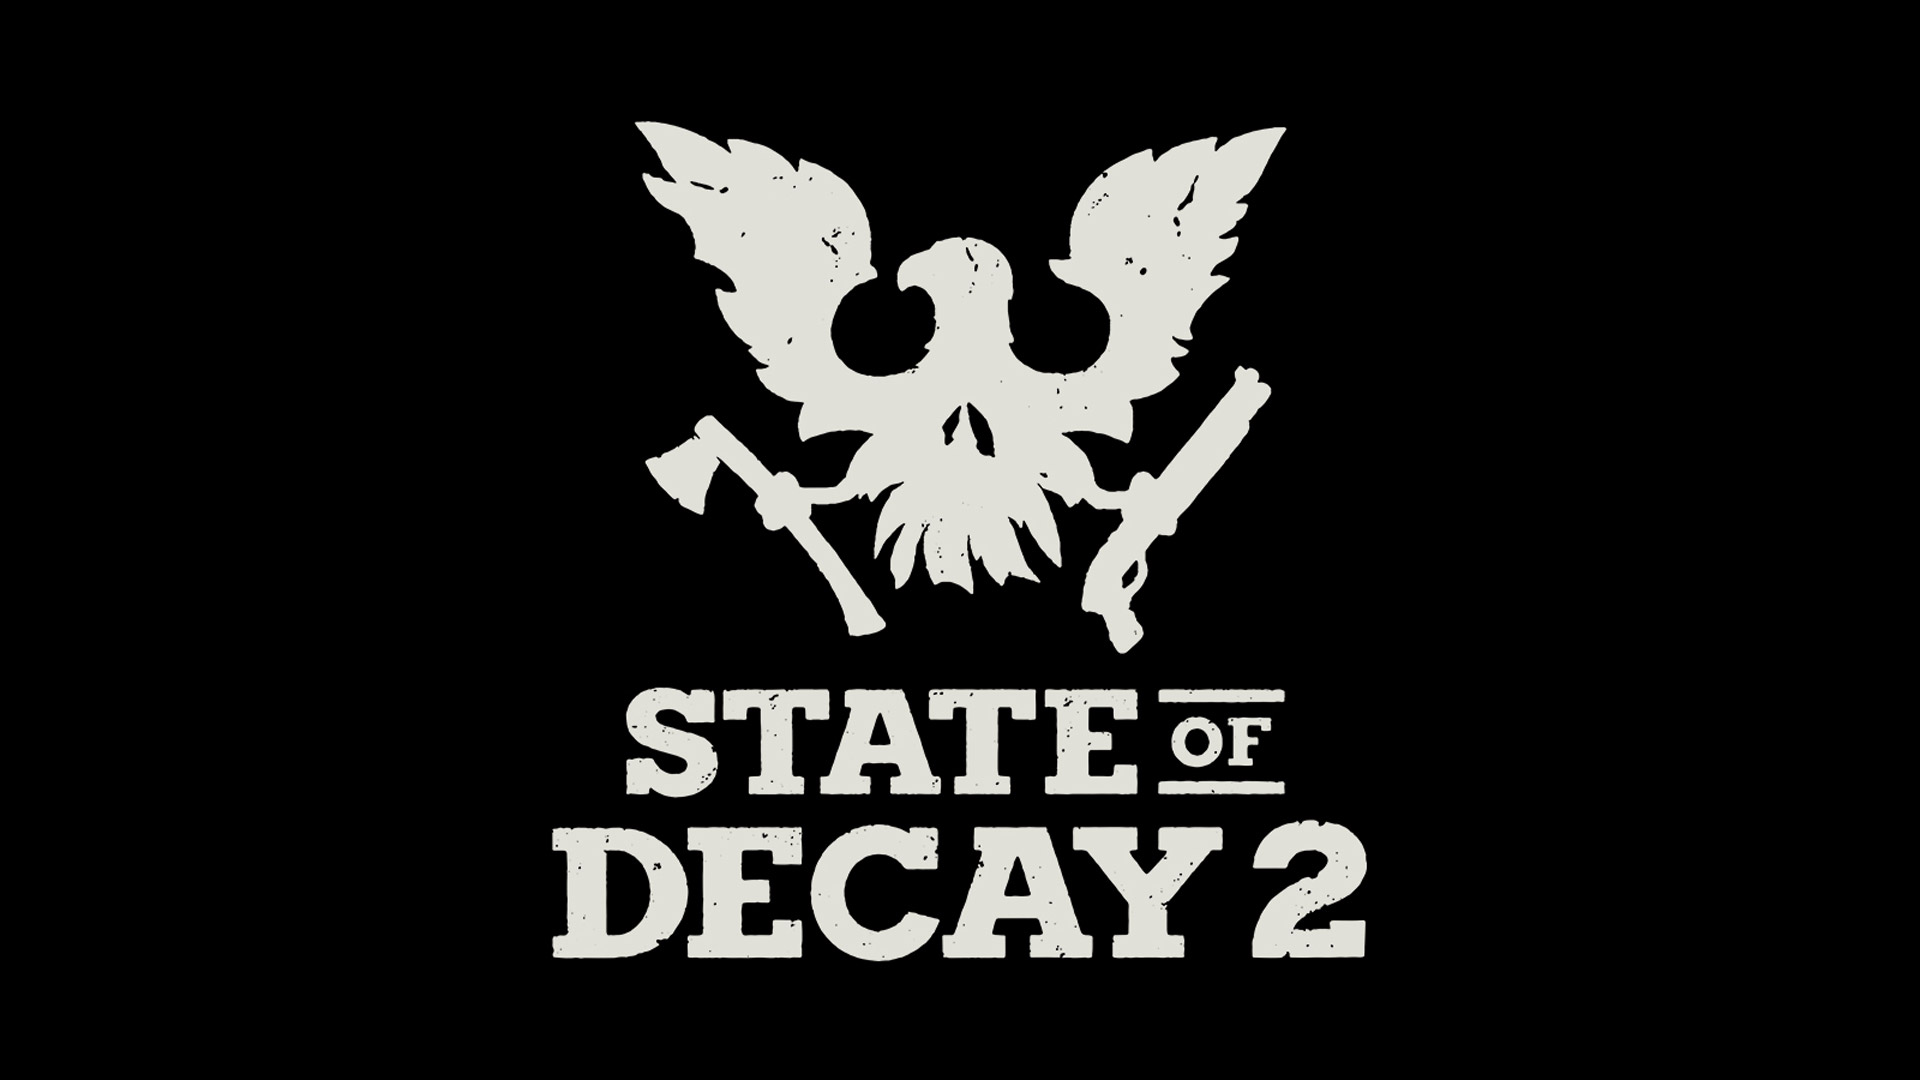 State of Decay 2 Wallpaper in 1920x1080